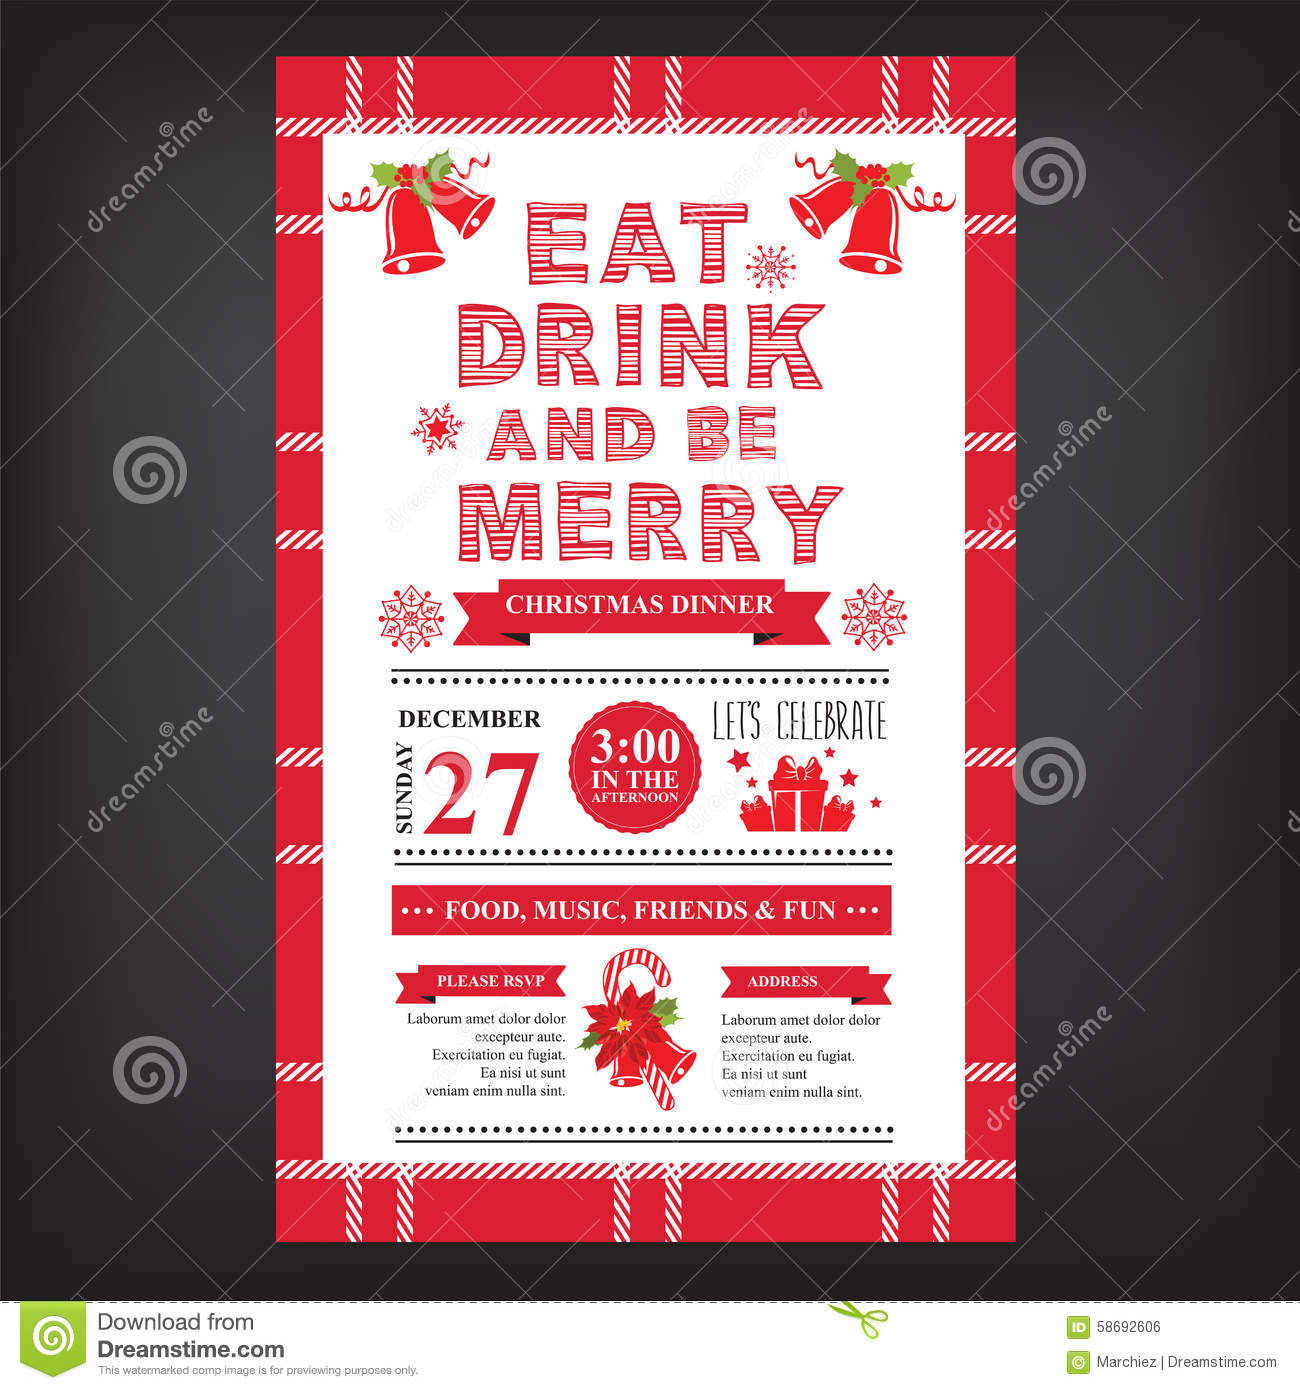 Christmas Restaurant And Party Menu, Invitation.  Free Christmas Party Templates Invitations